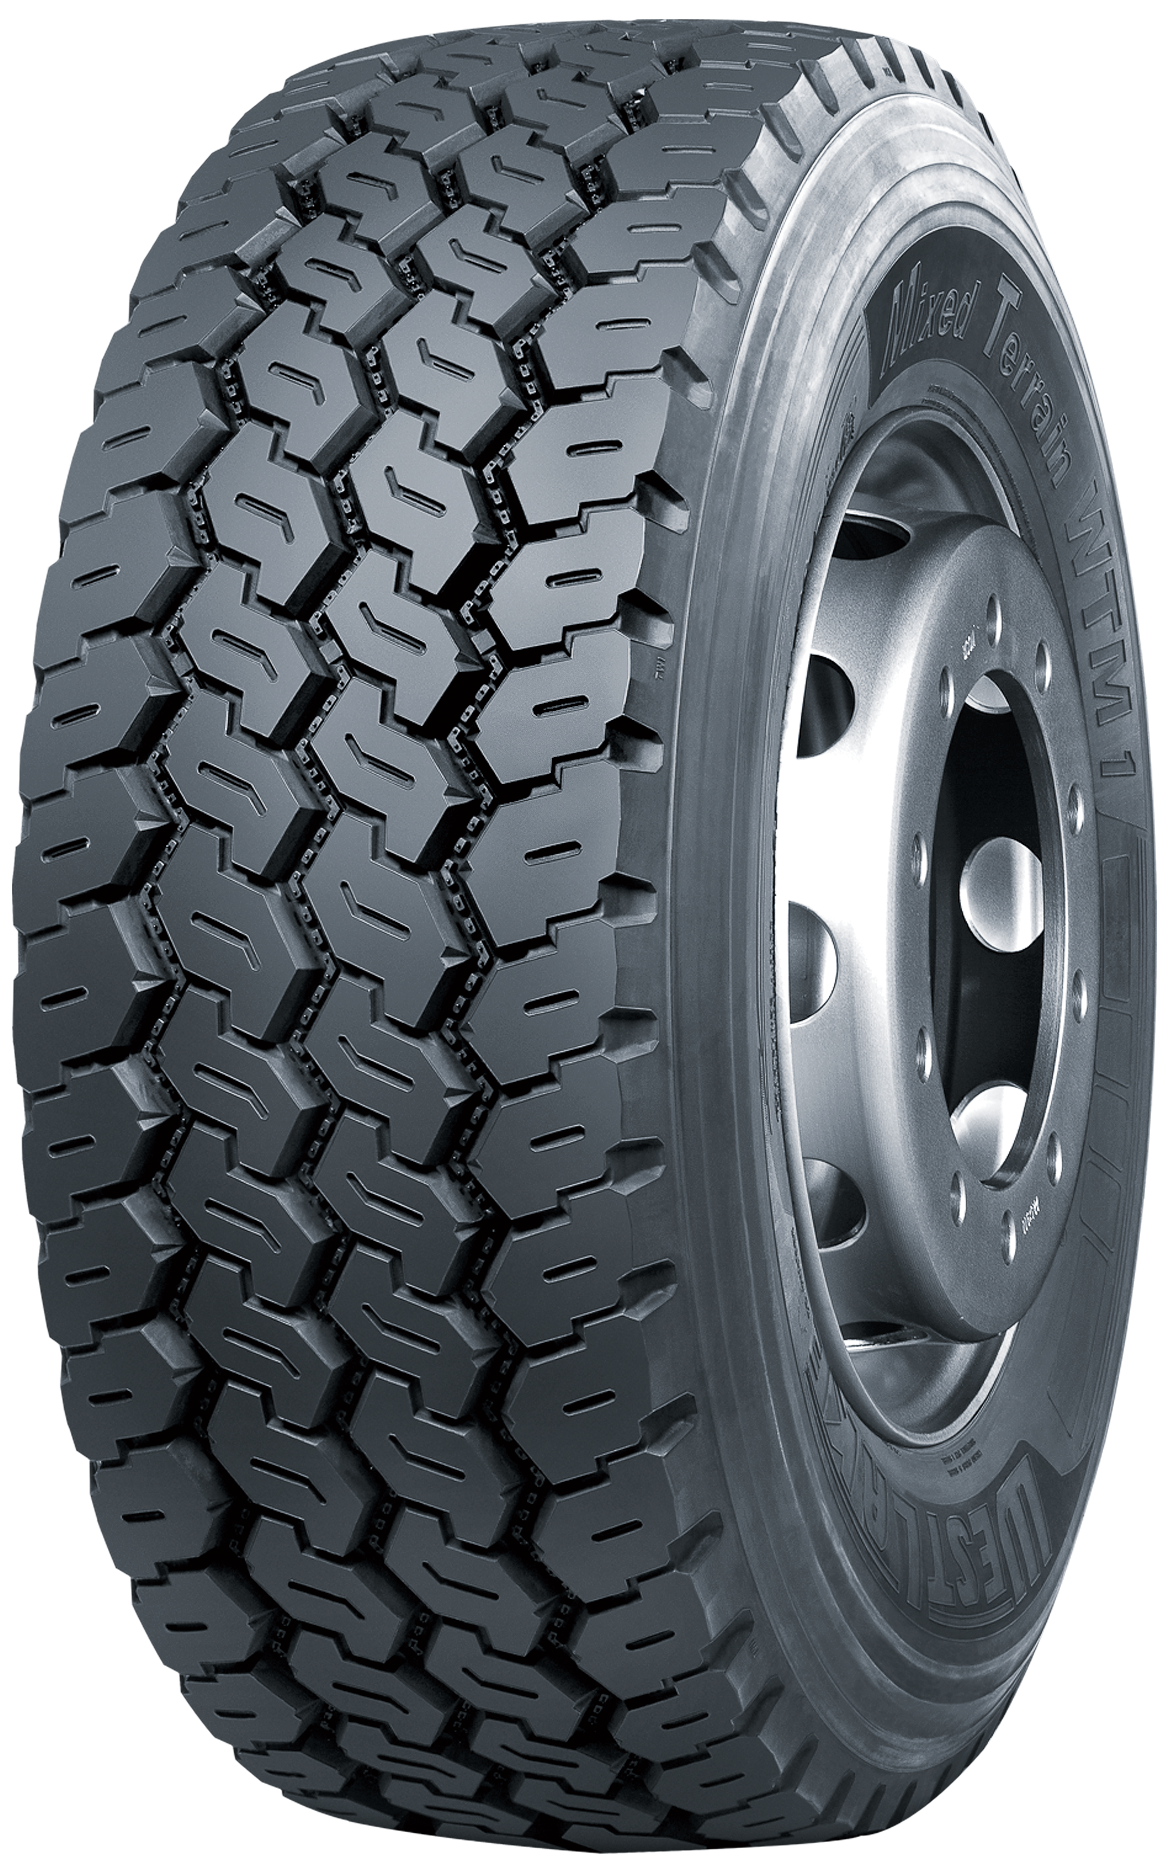 Truck tires png. Tire images free download